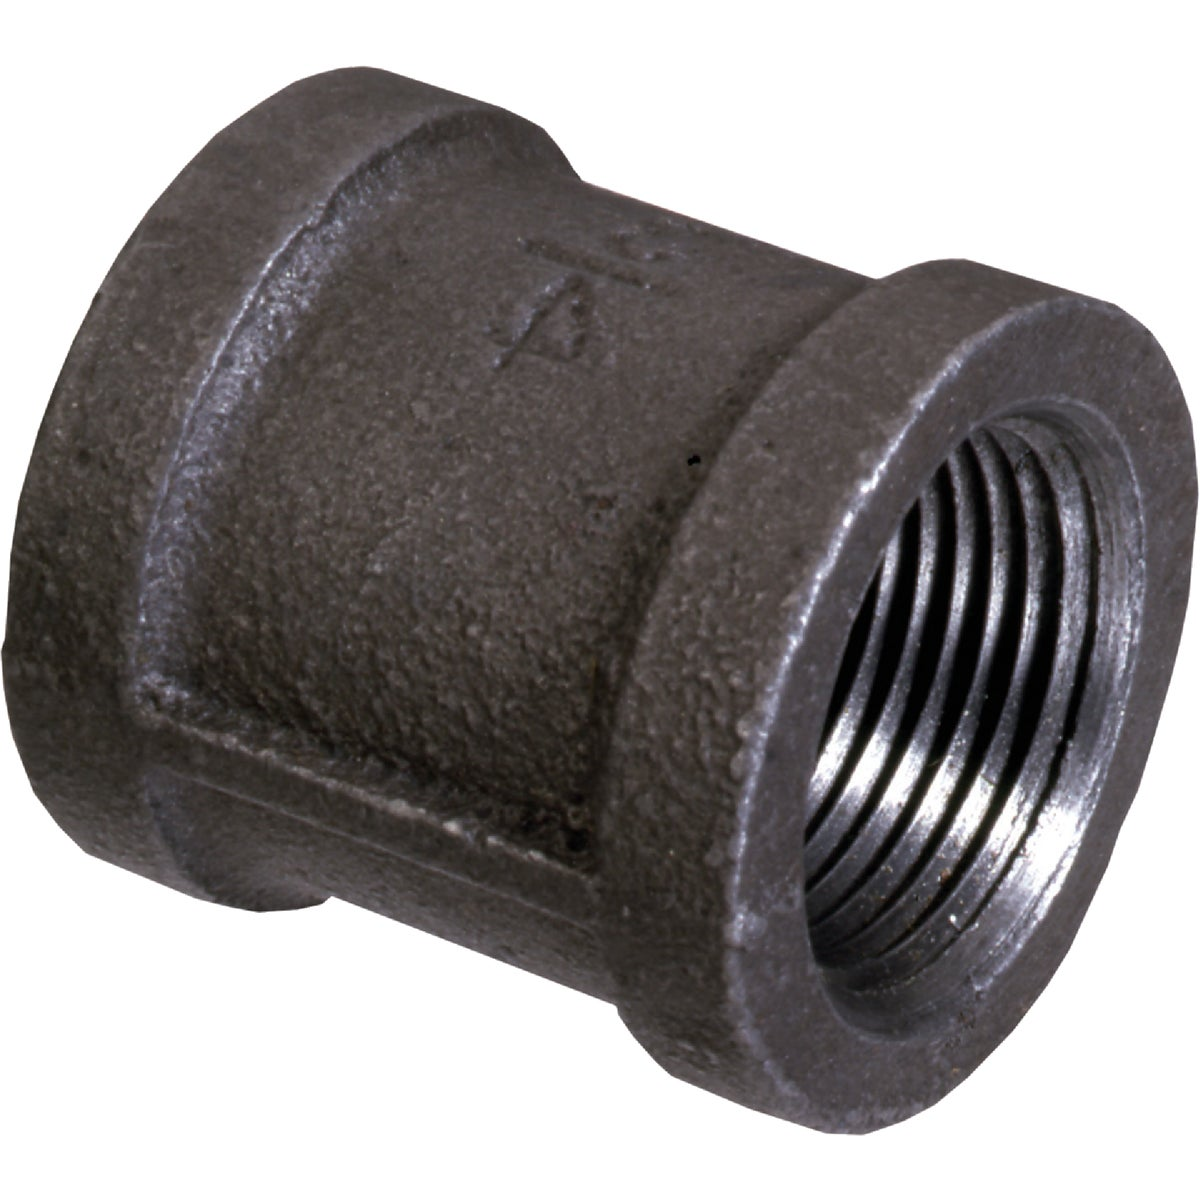 "1/4"" BLACK COUPLING - 521-201BG by Mueller B K"